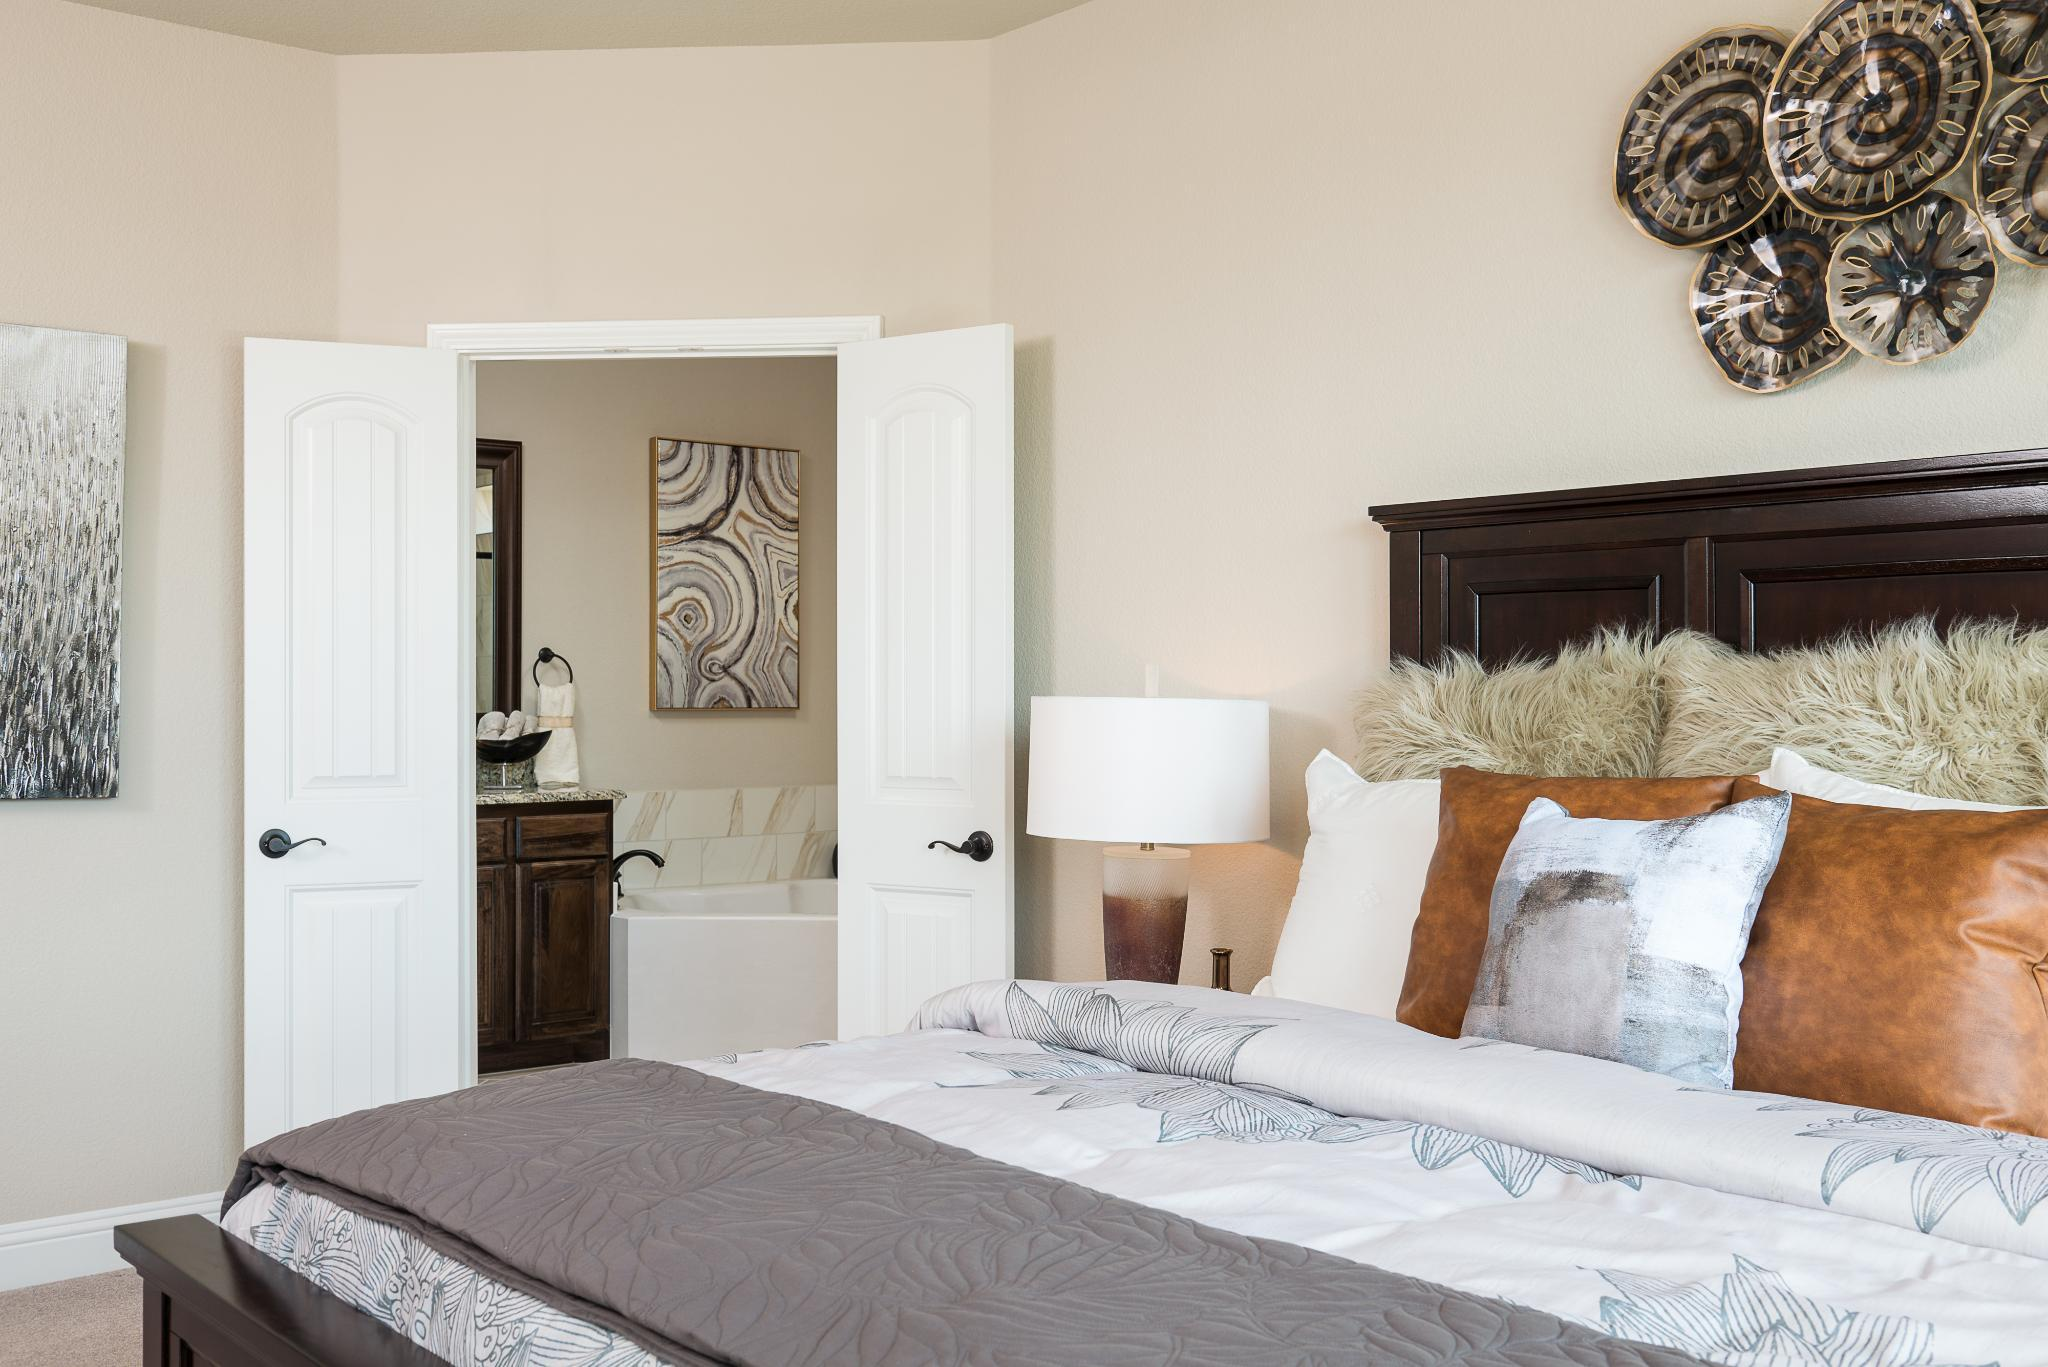 Bedroom featured in the 3135 By Antares Homes in Fort Worth, TX